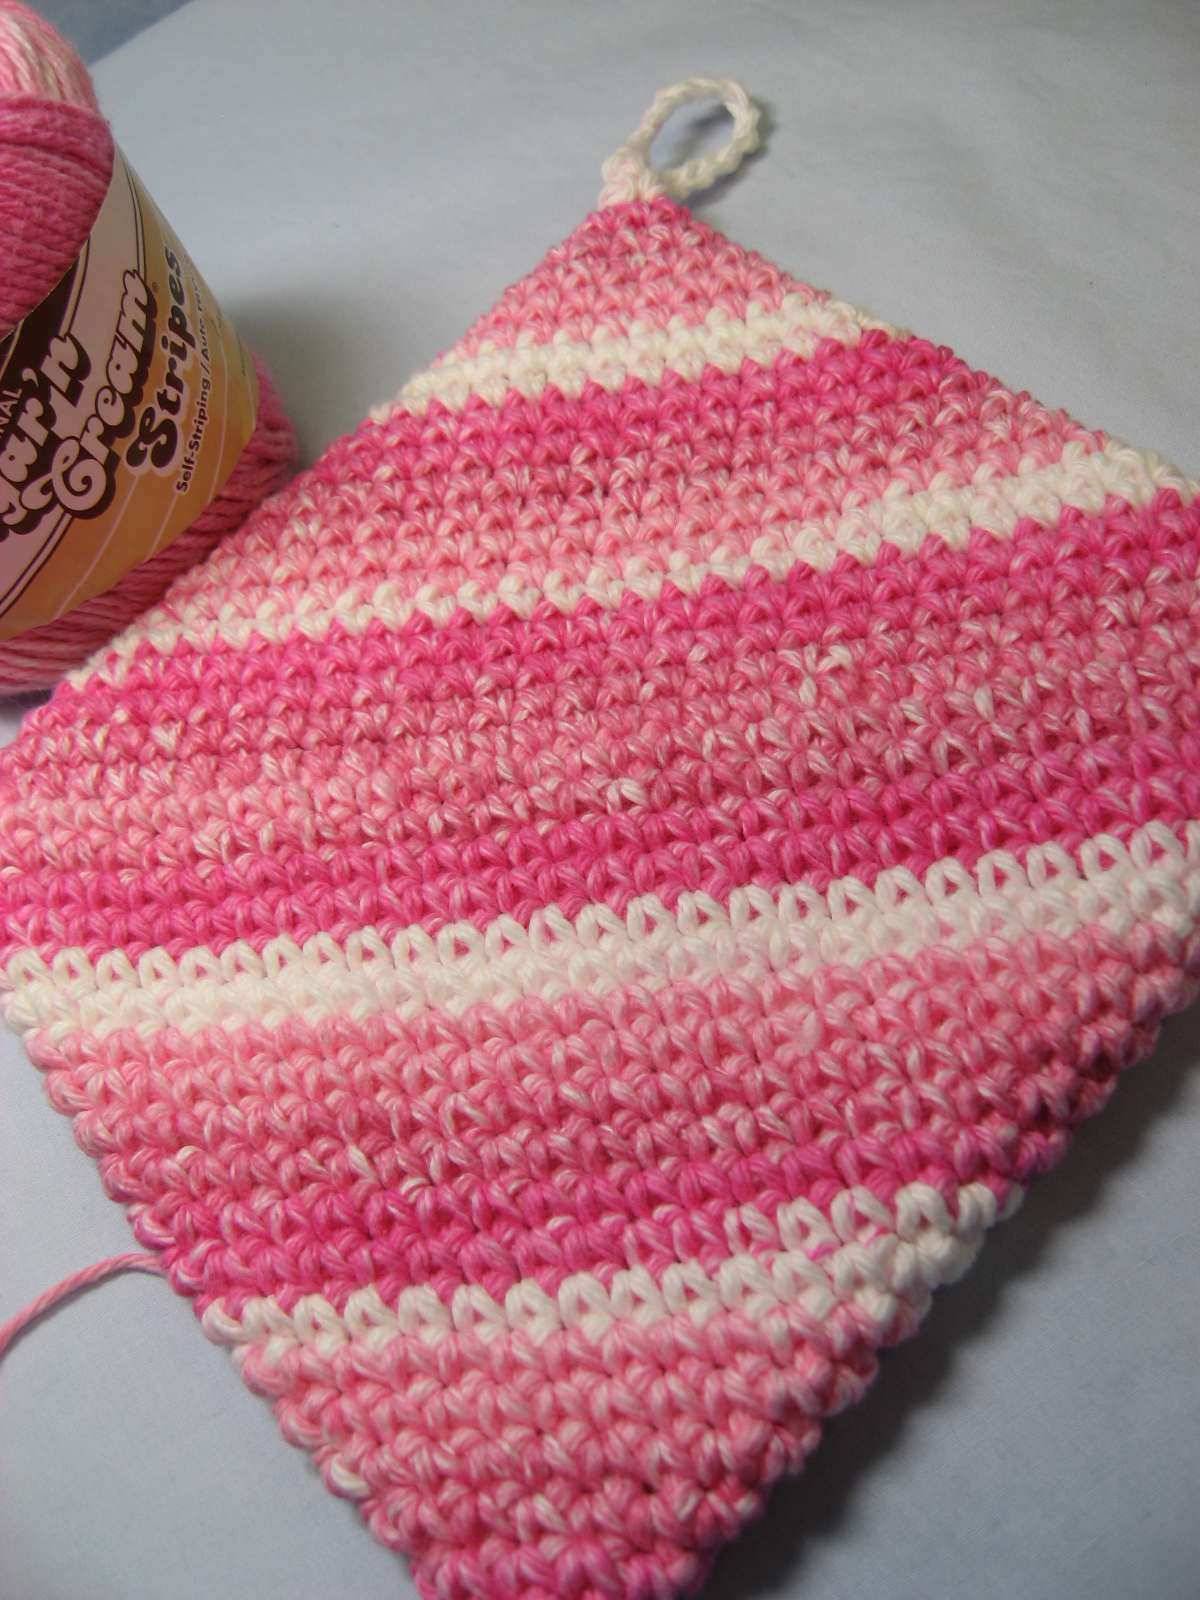 Hooked on Needles: Crocheted Hot Pad/Potholder - Its ...